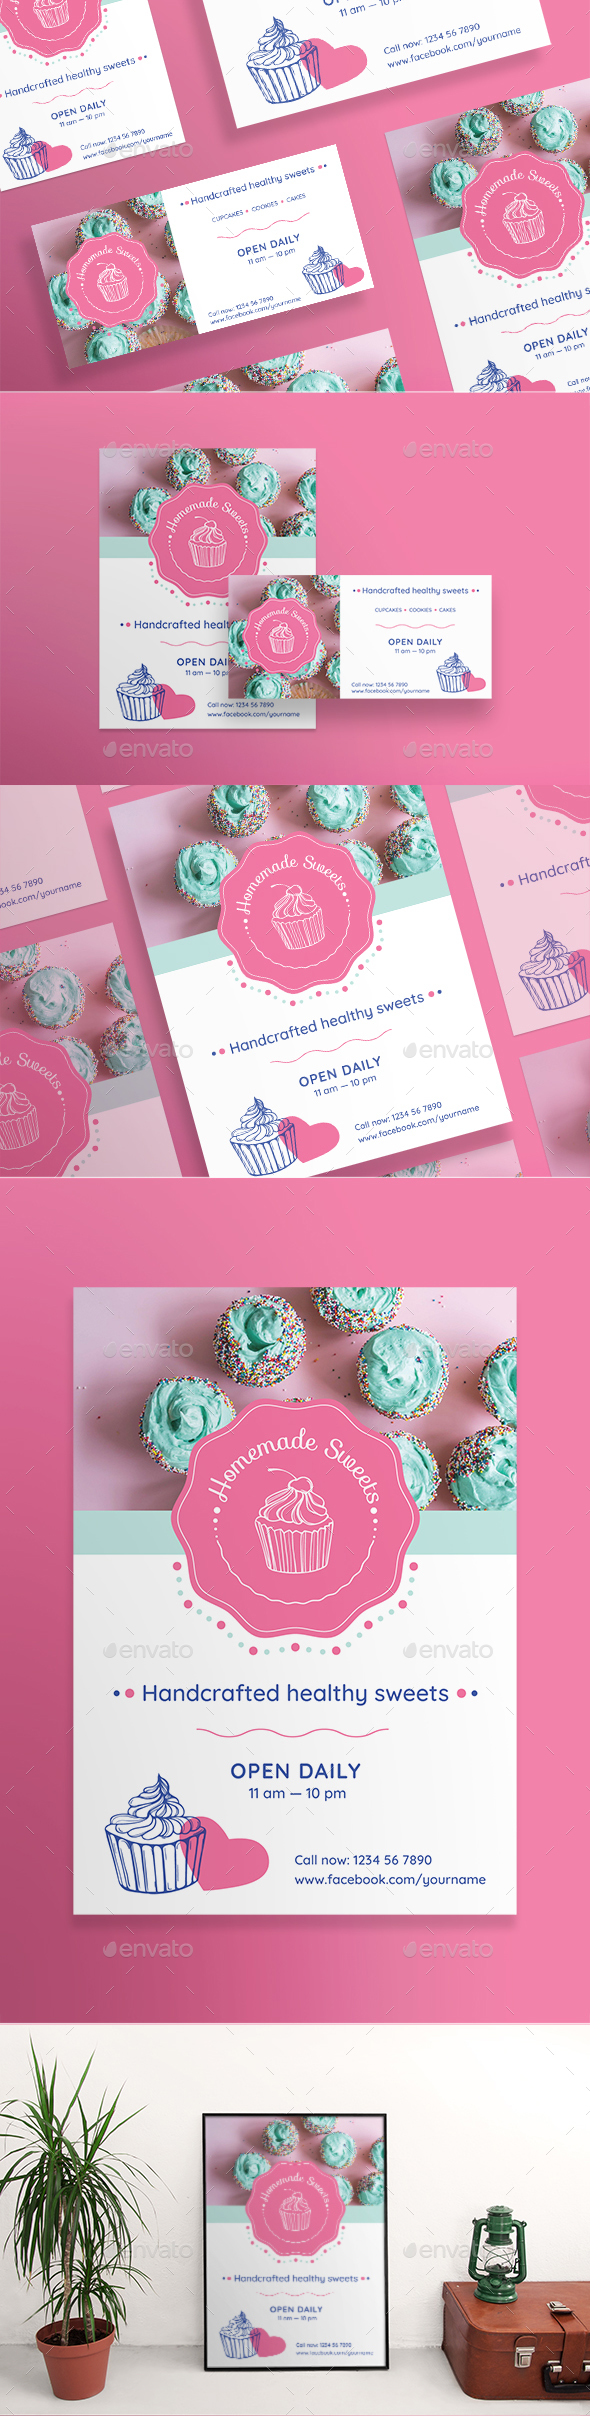 Homemade Sweets Flyers - Restaurant Flyers